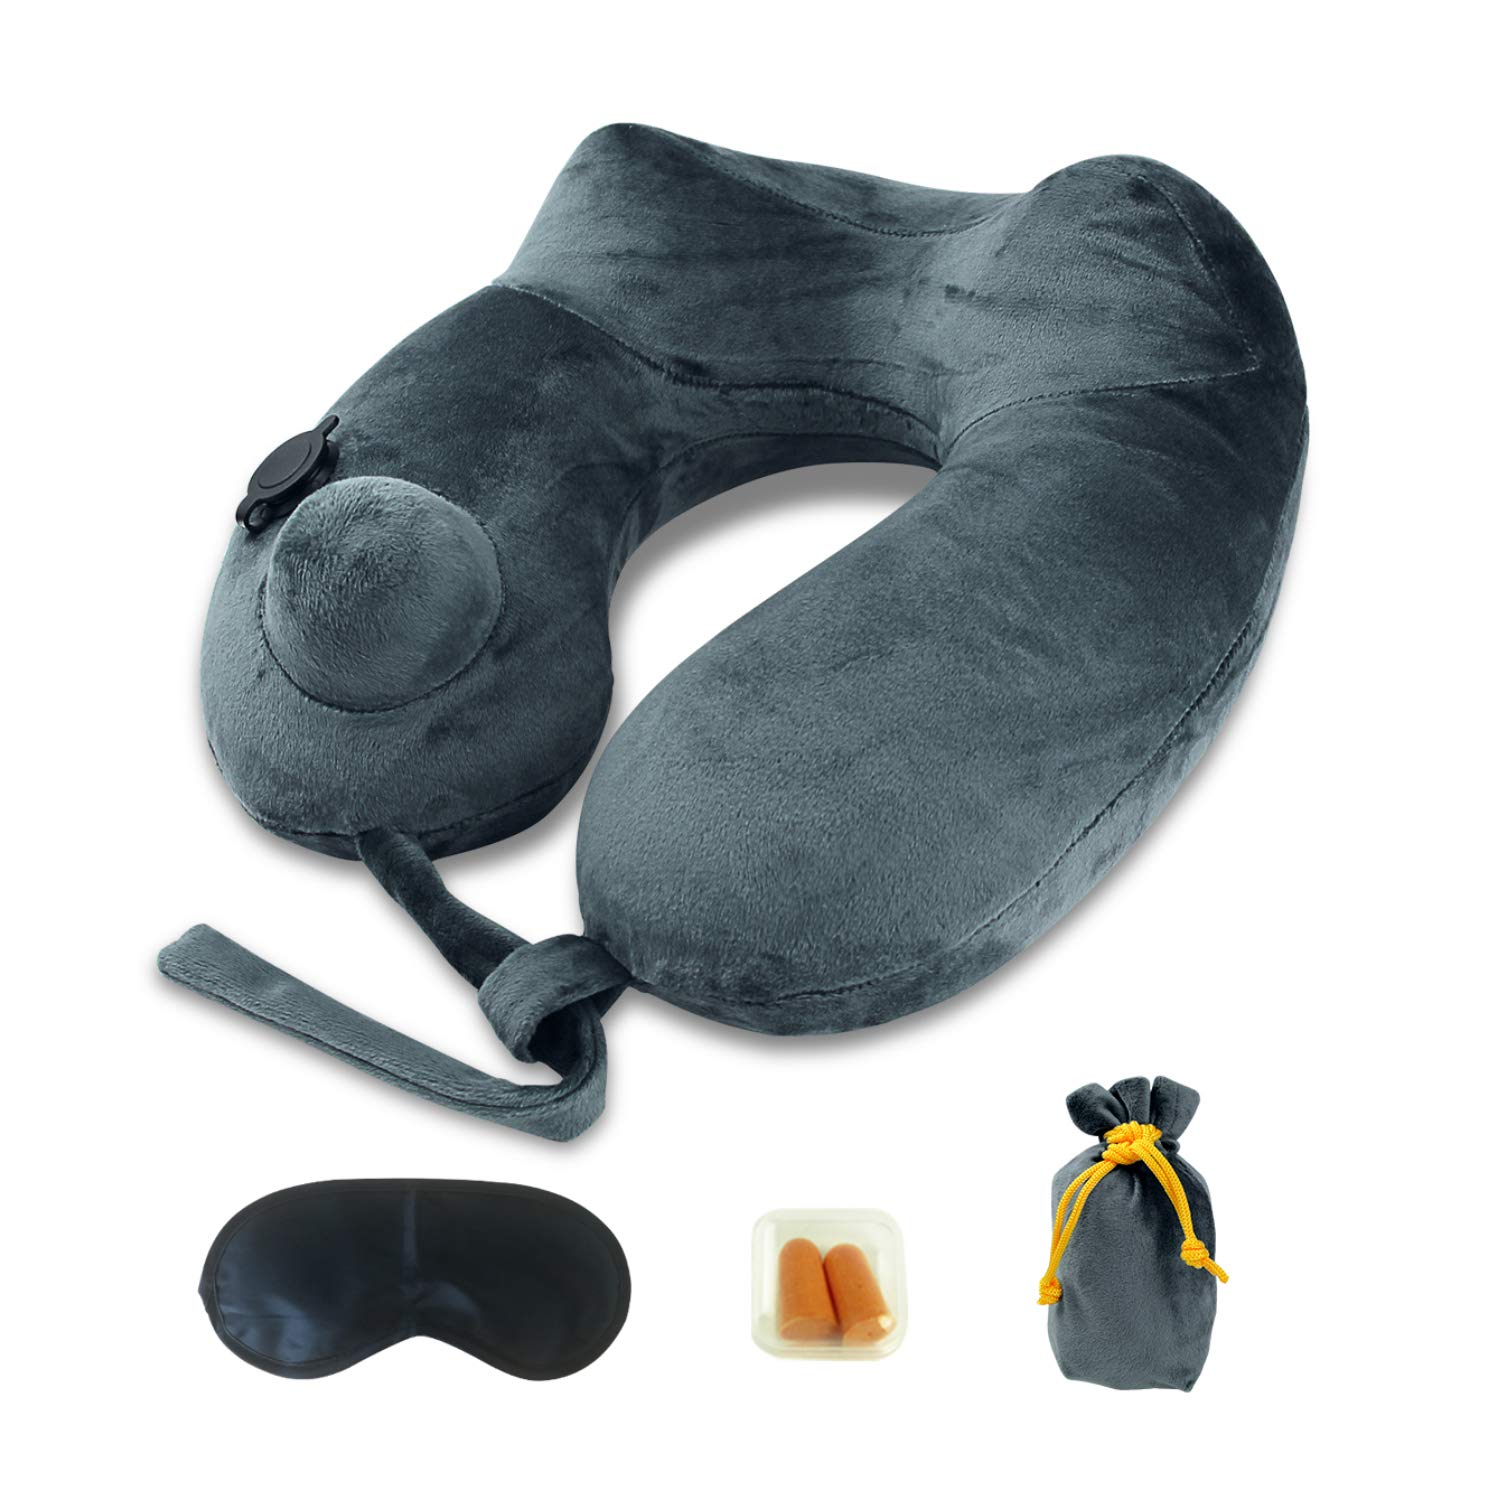 MLVOC Inflatable Travel Pillow - Breathable & Comfortable U-Shape Neck Pillow for Airplanes Travel Car - Grey